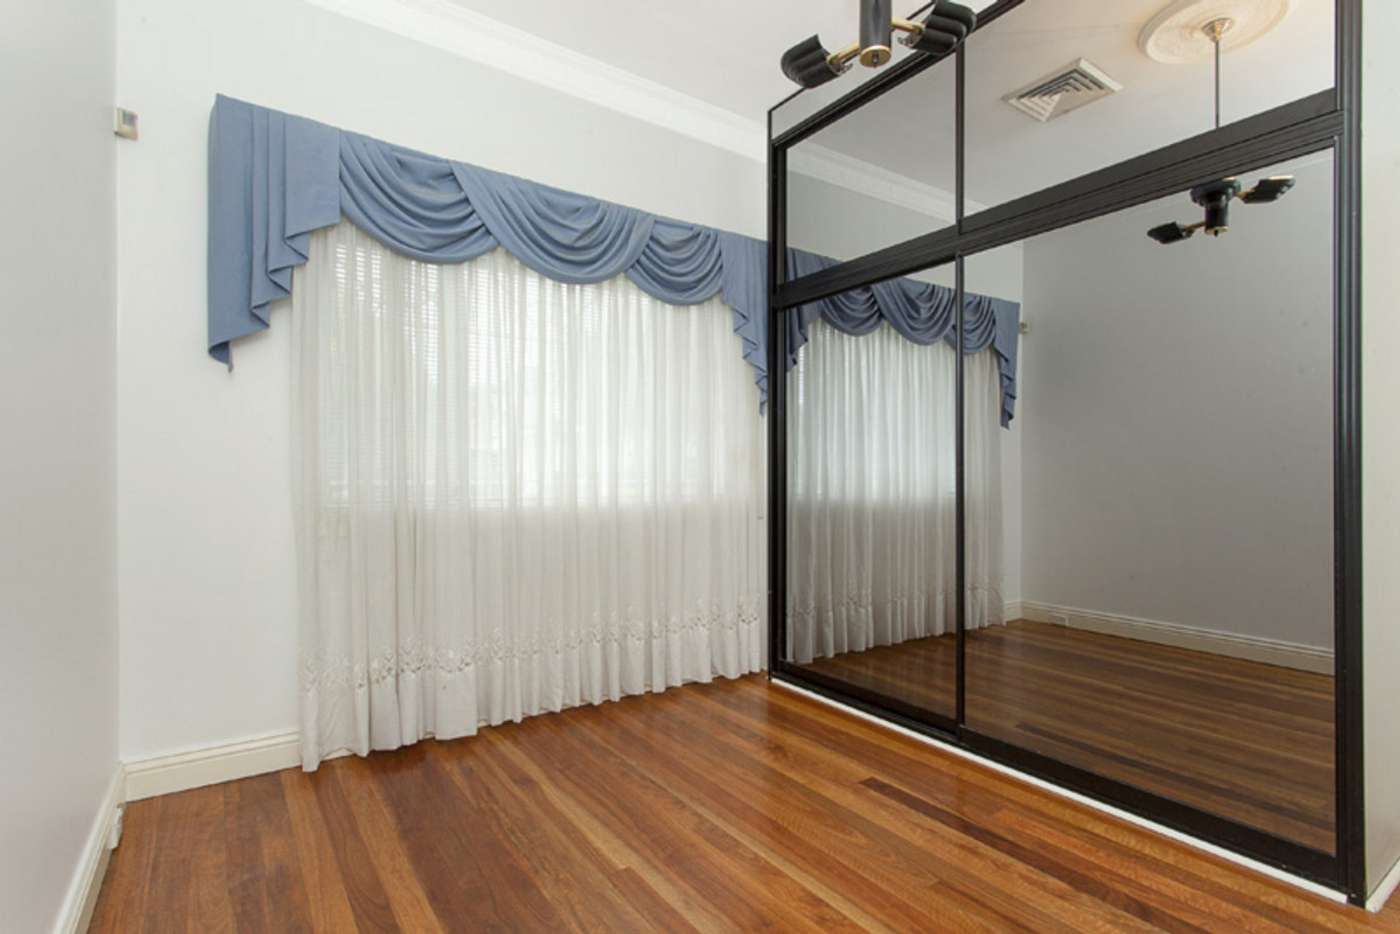 Sixth view of Homely house listing, 7 Cross Street, Croydon NSW 2132